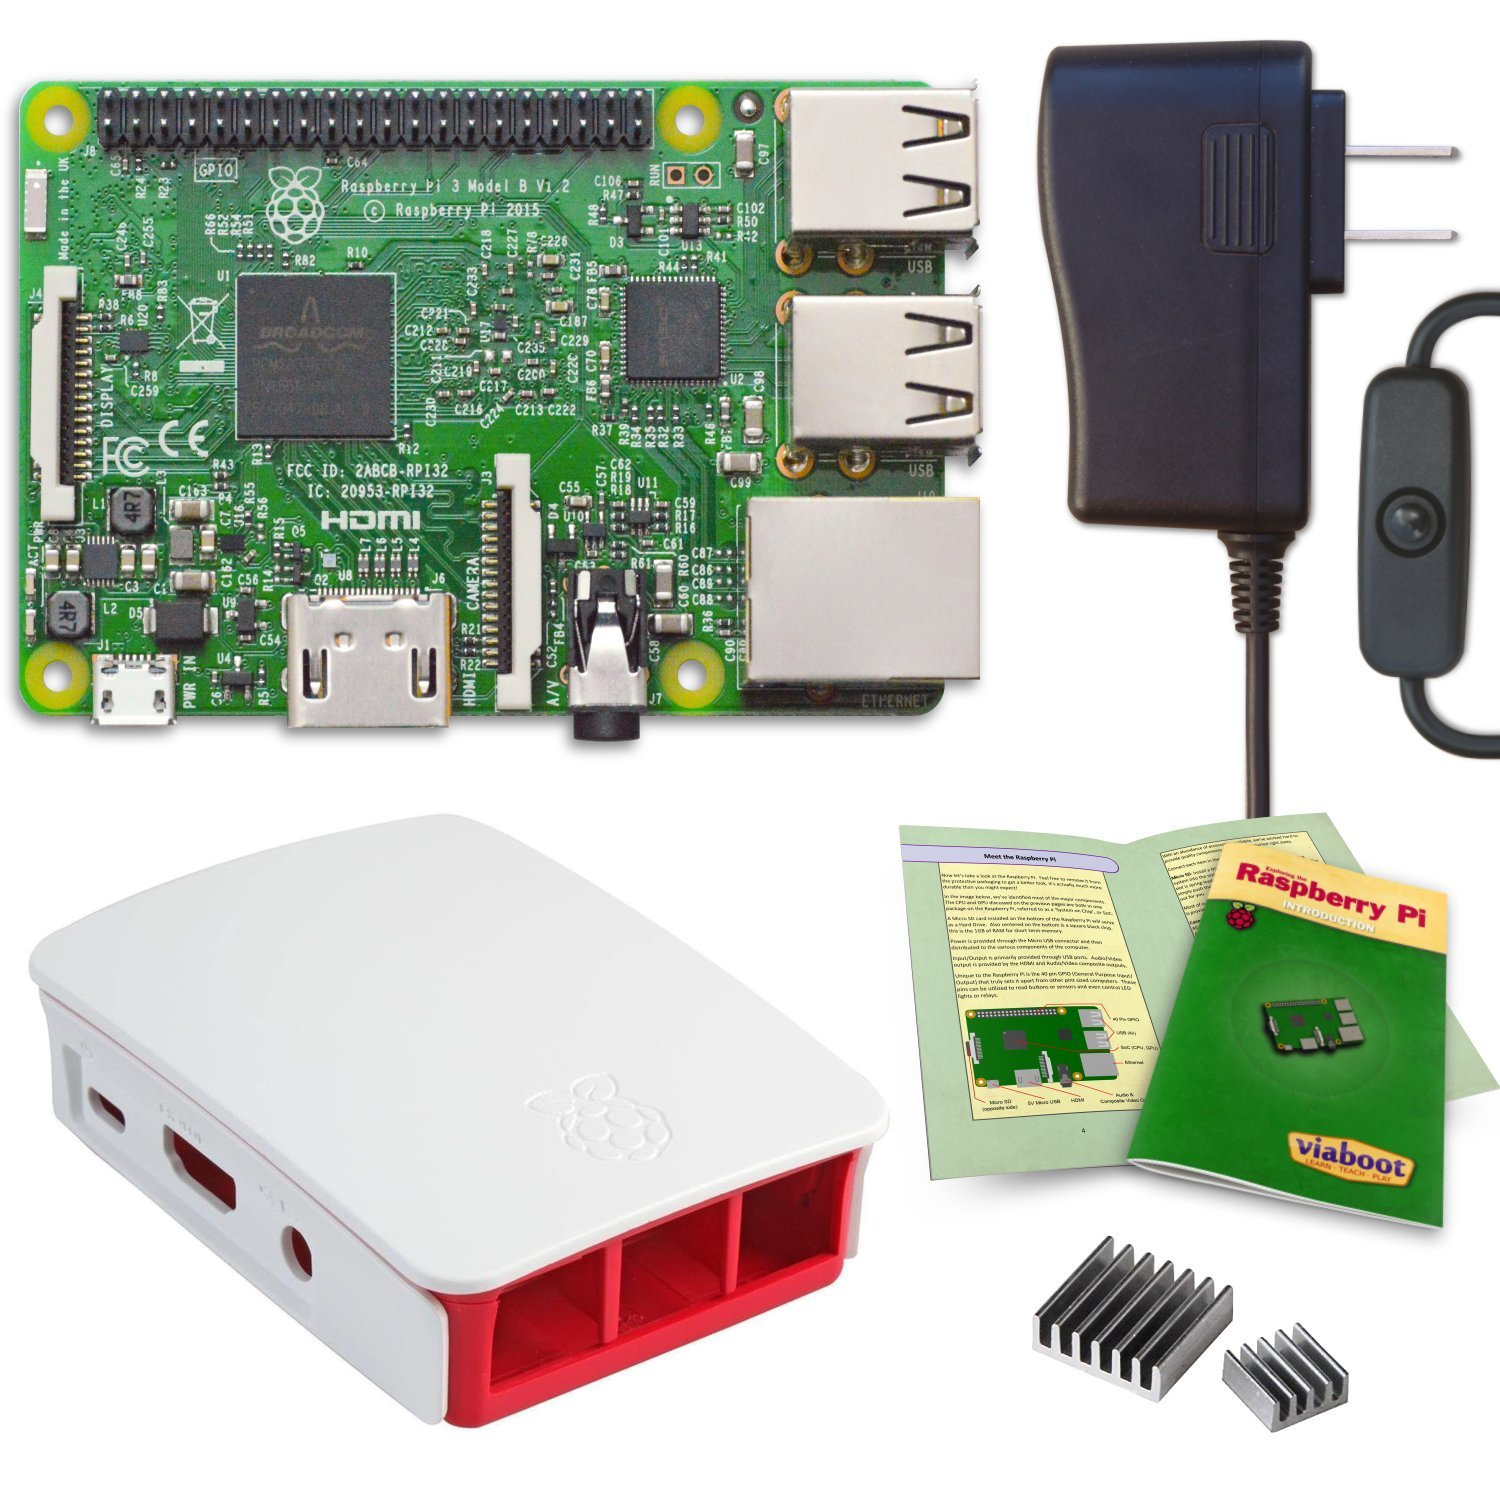 Viaboot Raspberry Pi 3 Power Kit — UL Listed 2.5A Power Supply, Official Red/White Case Edition